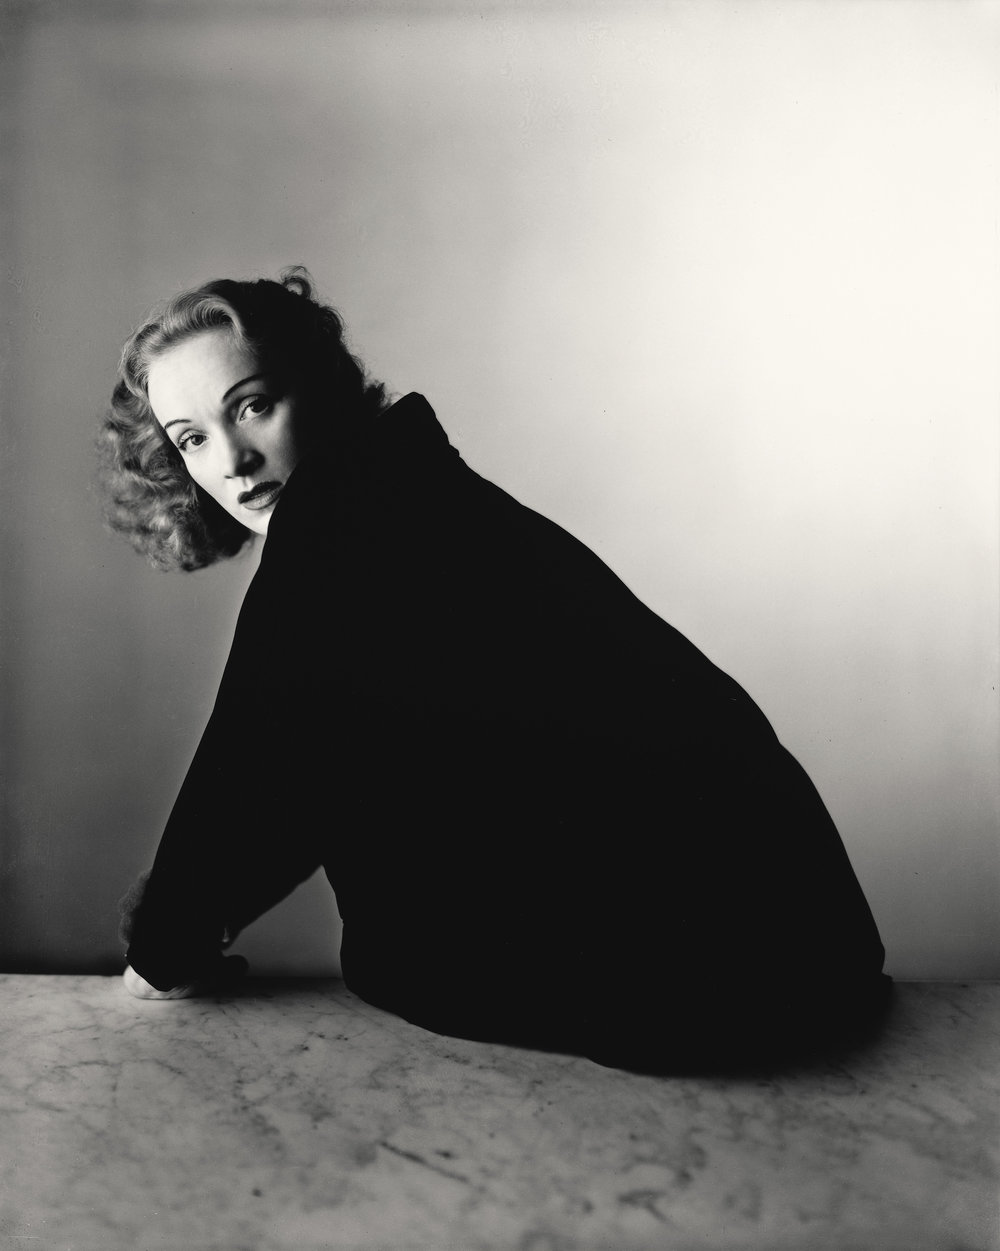 Irving Penn (American, 1917–2009)     Marlene Dietrich , New York, 1948    Gelatin silver print, 2000   10 × 8 1/8 in. (25.4 × 20.6 cm)   The Metropolitan Museum of Art, New York   Promised Gift of The Irving Penn Foundation   © The Irving Penn Foundation